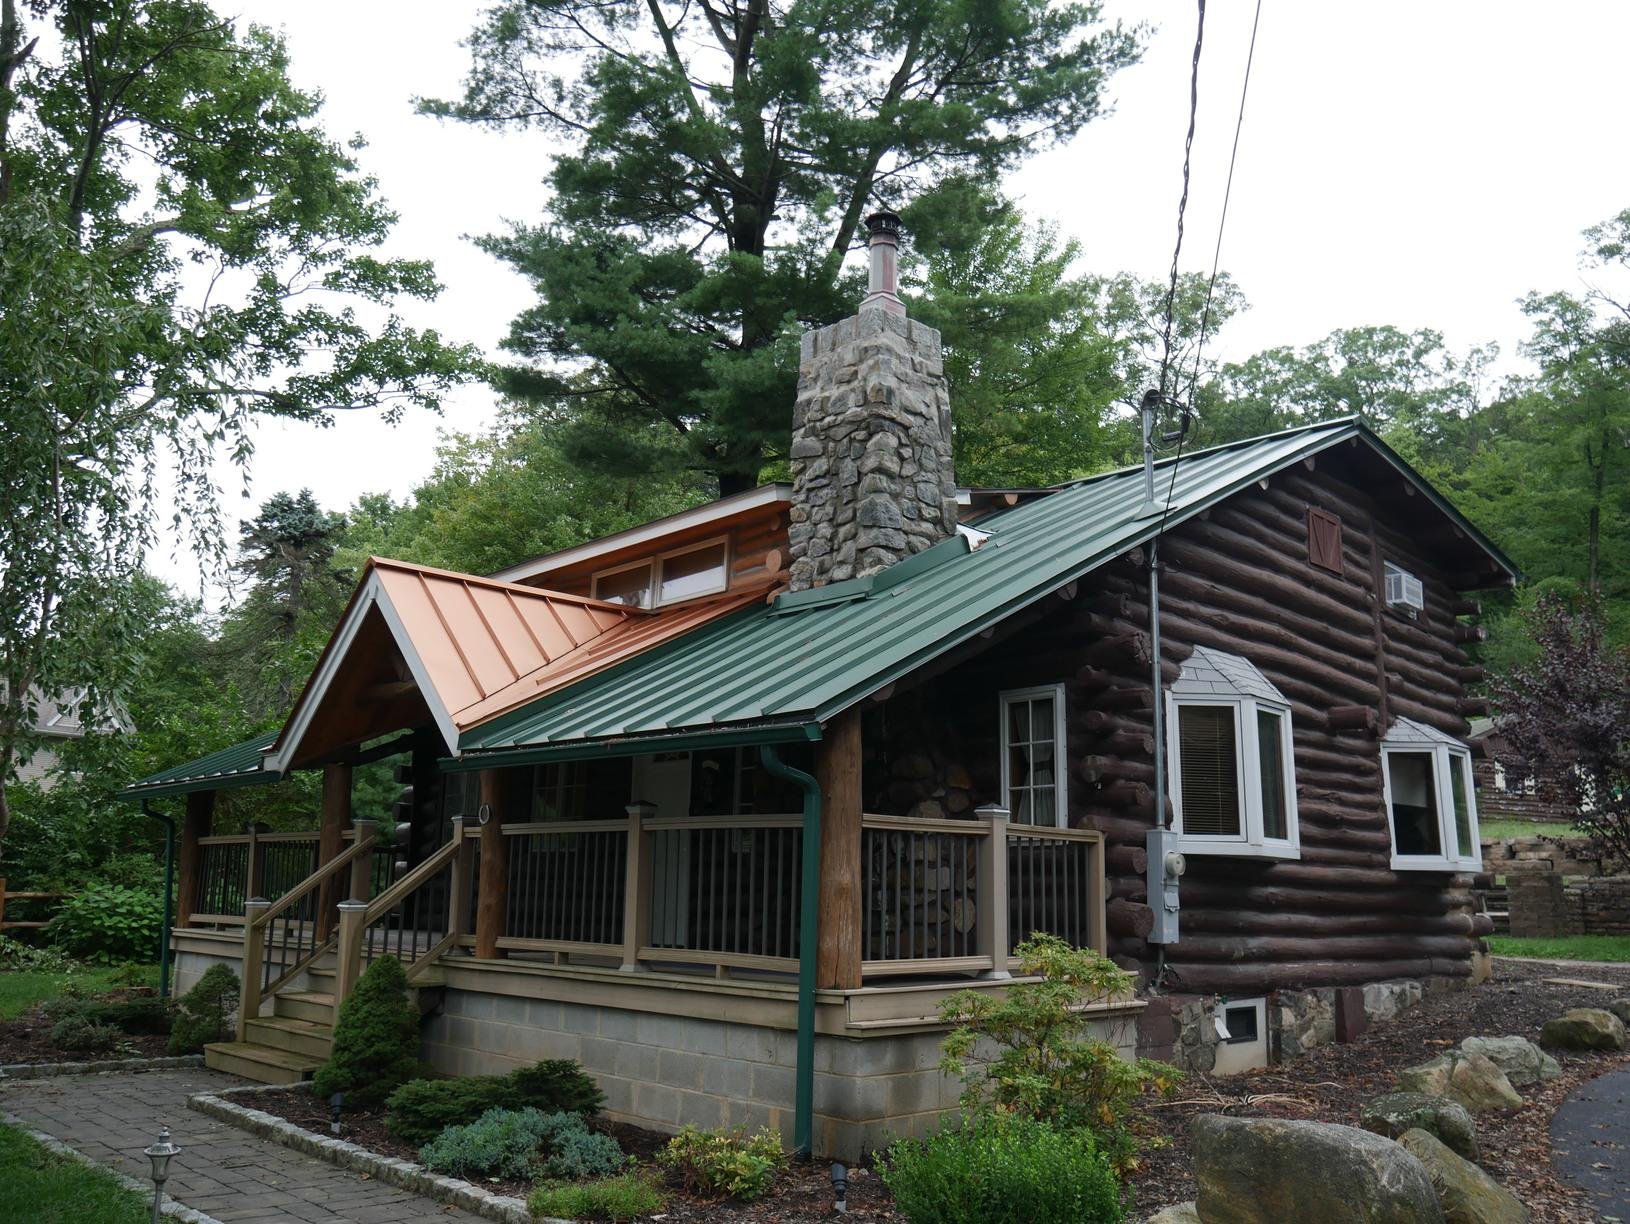 Custom Metallic Copper and Forest Green Standing Seam Metal Roof Installation on Log Cabin in West Milford, NJ